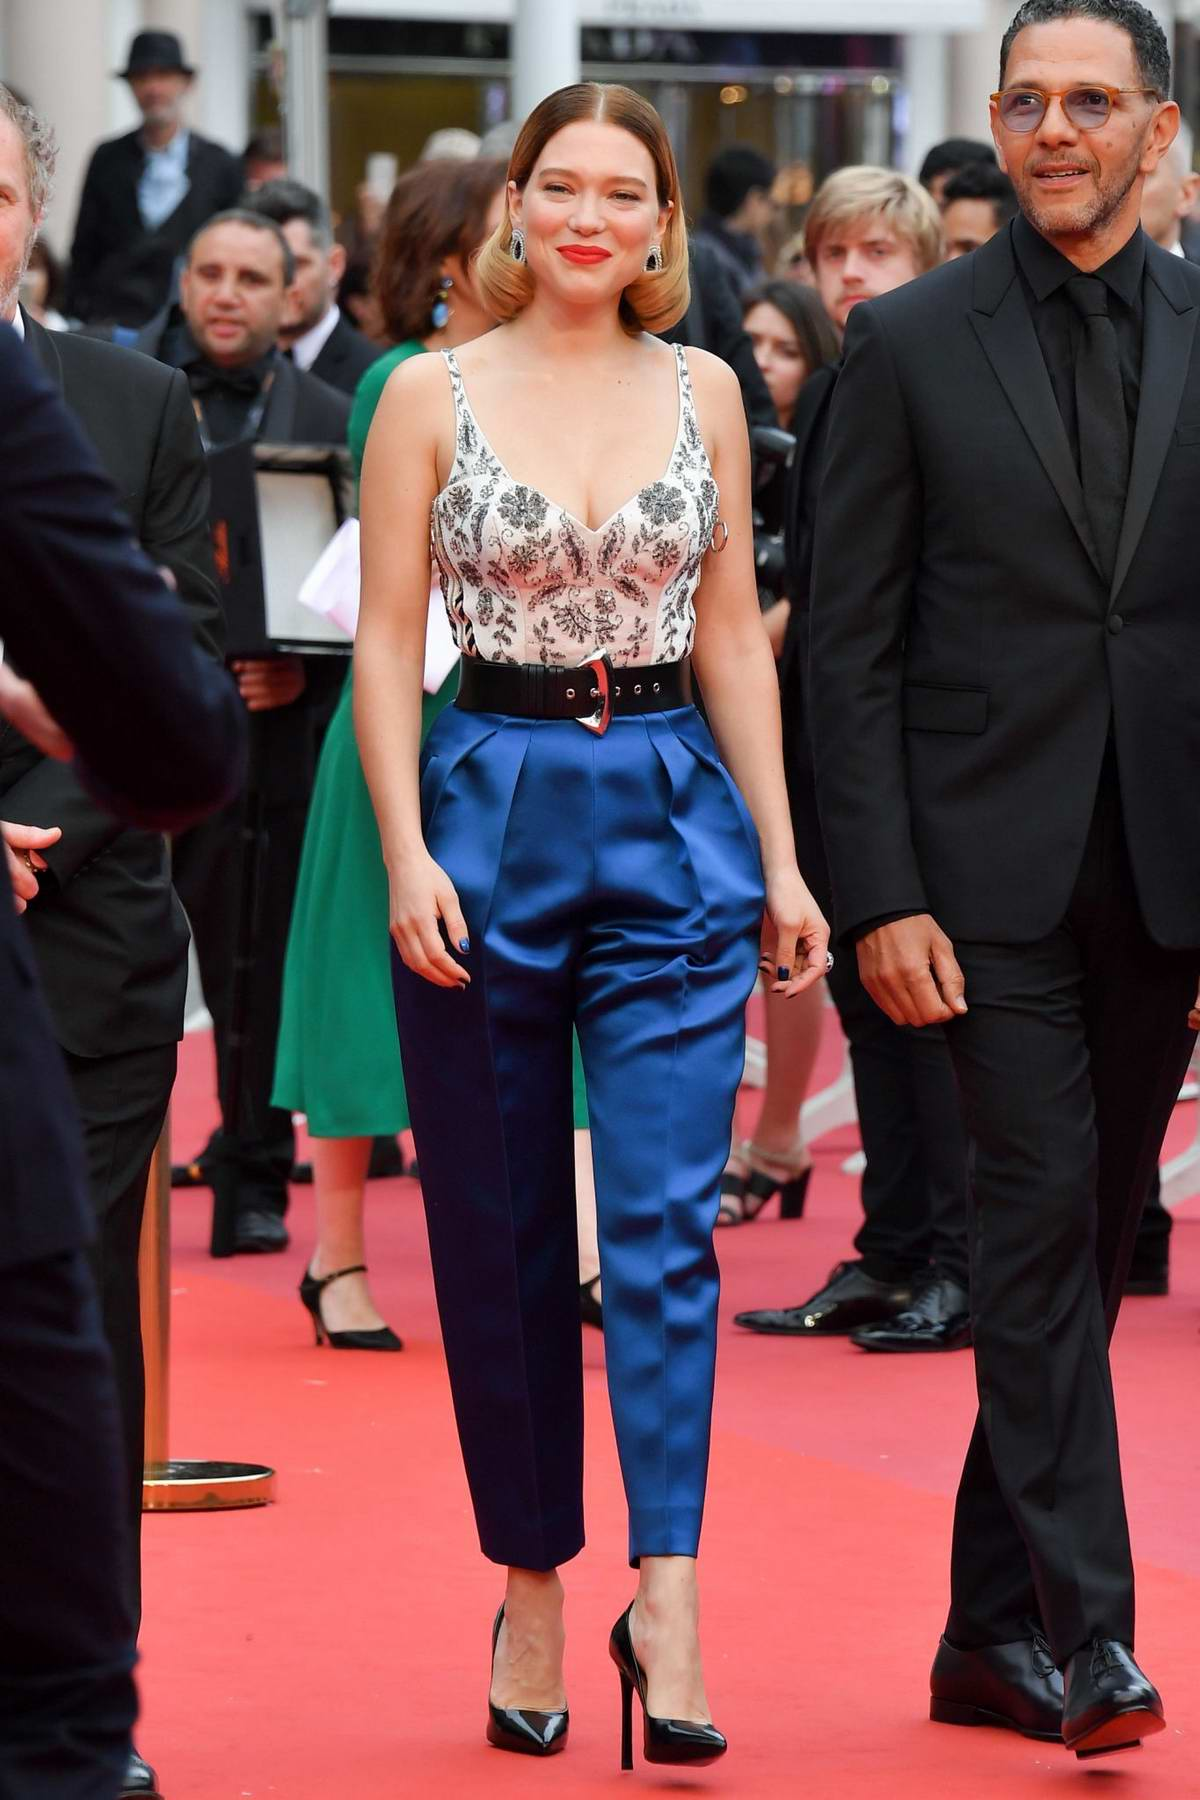 Lea Seydoux attends the screening of 'Oh Mercy! during the 72nd annual Cannes Film Festival in Cannes, France